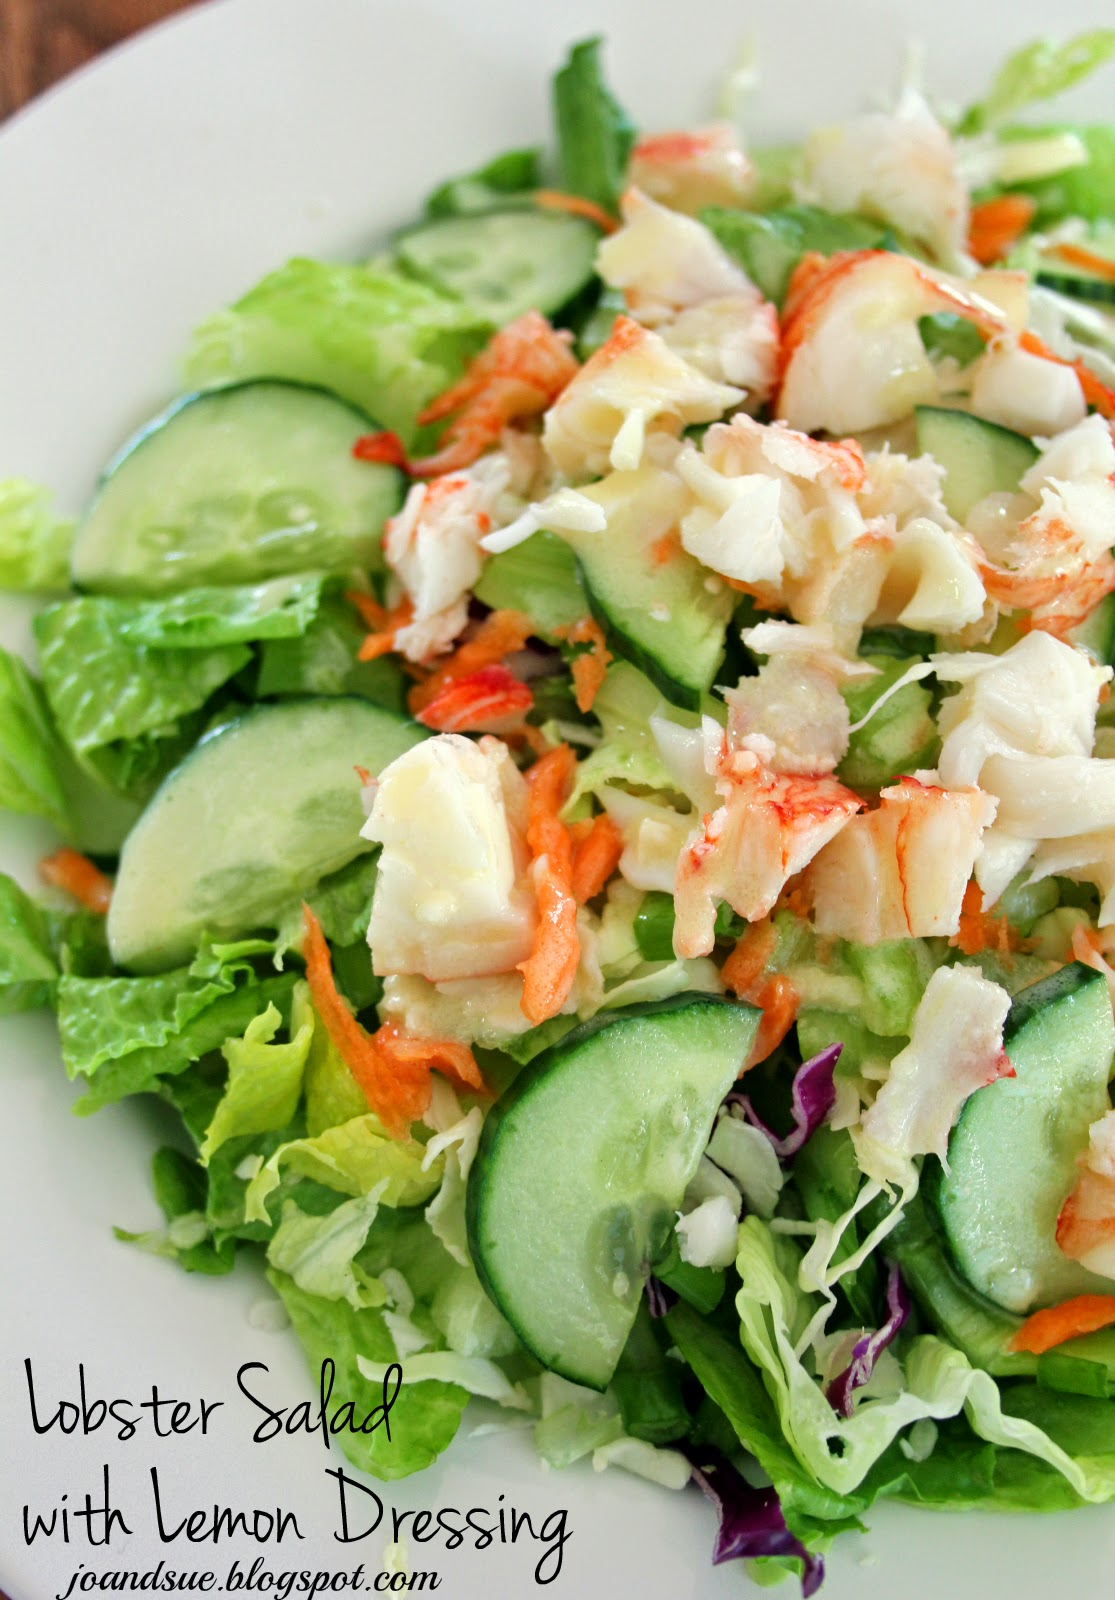 Jo and Sue: Lobster Salad With Lemon Dressing